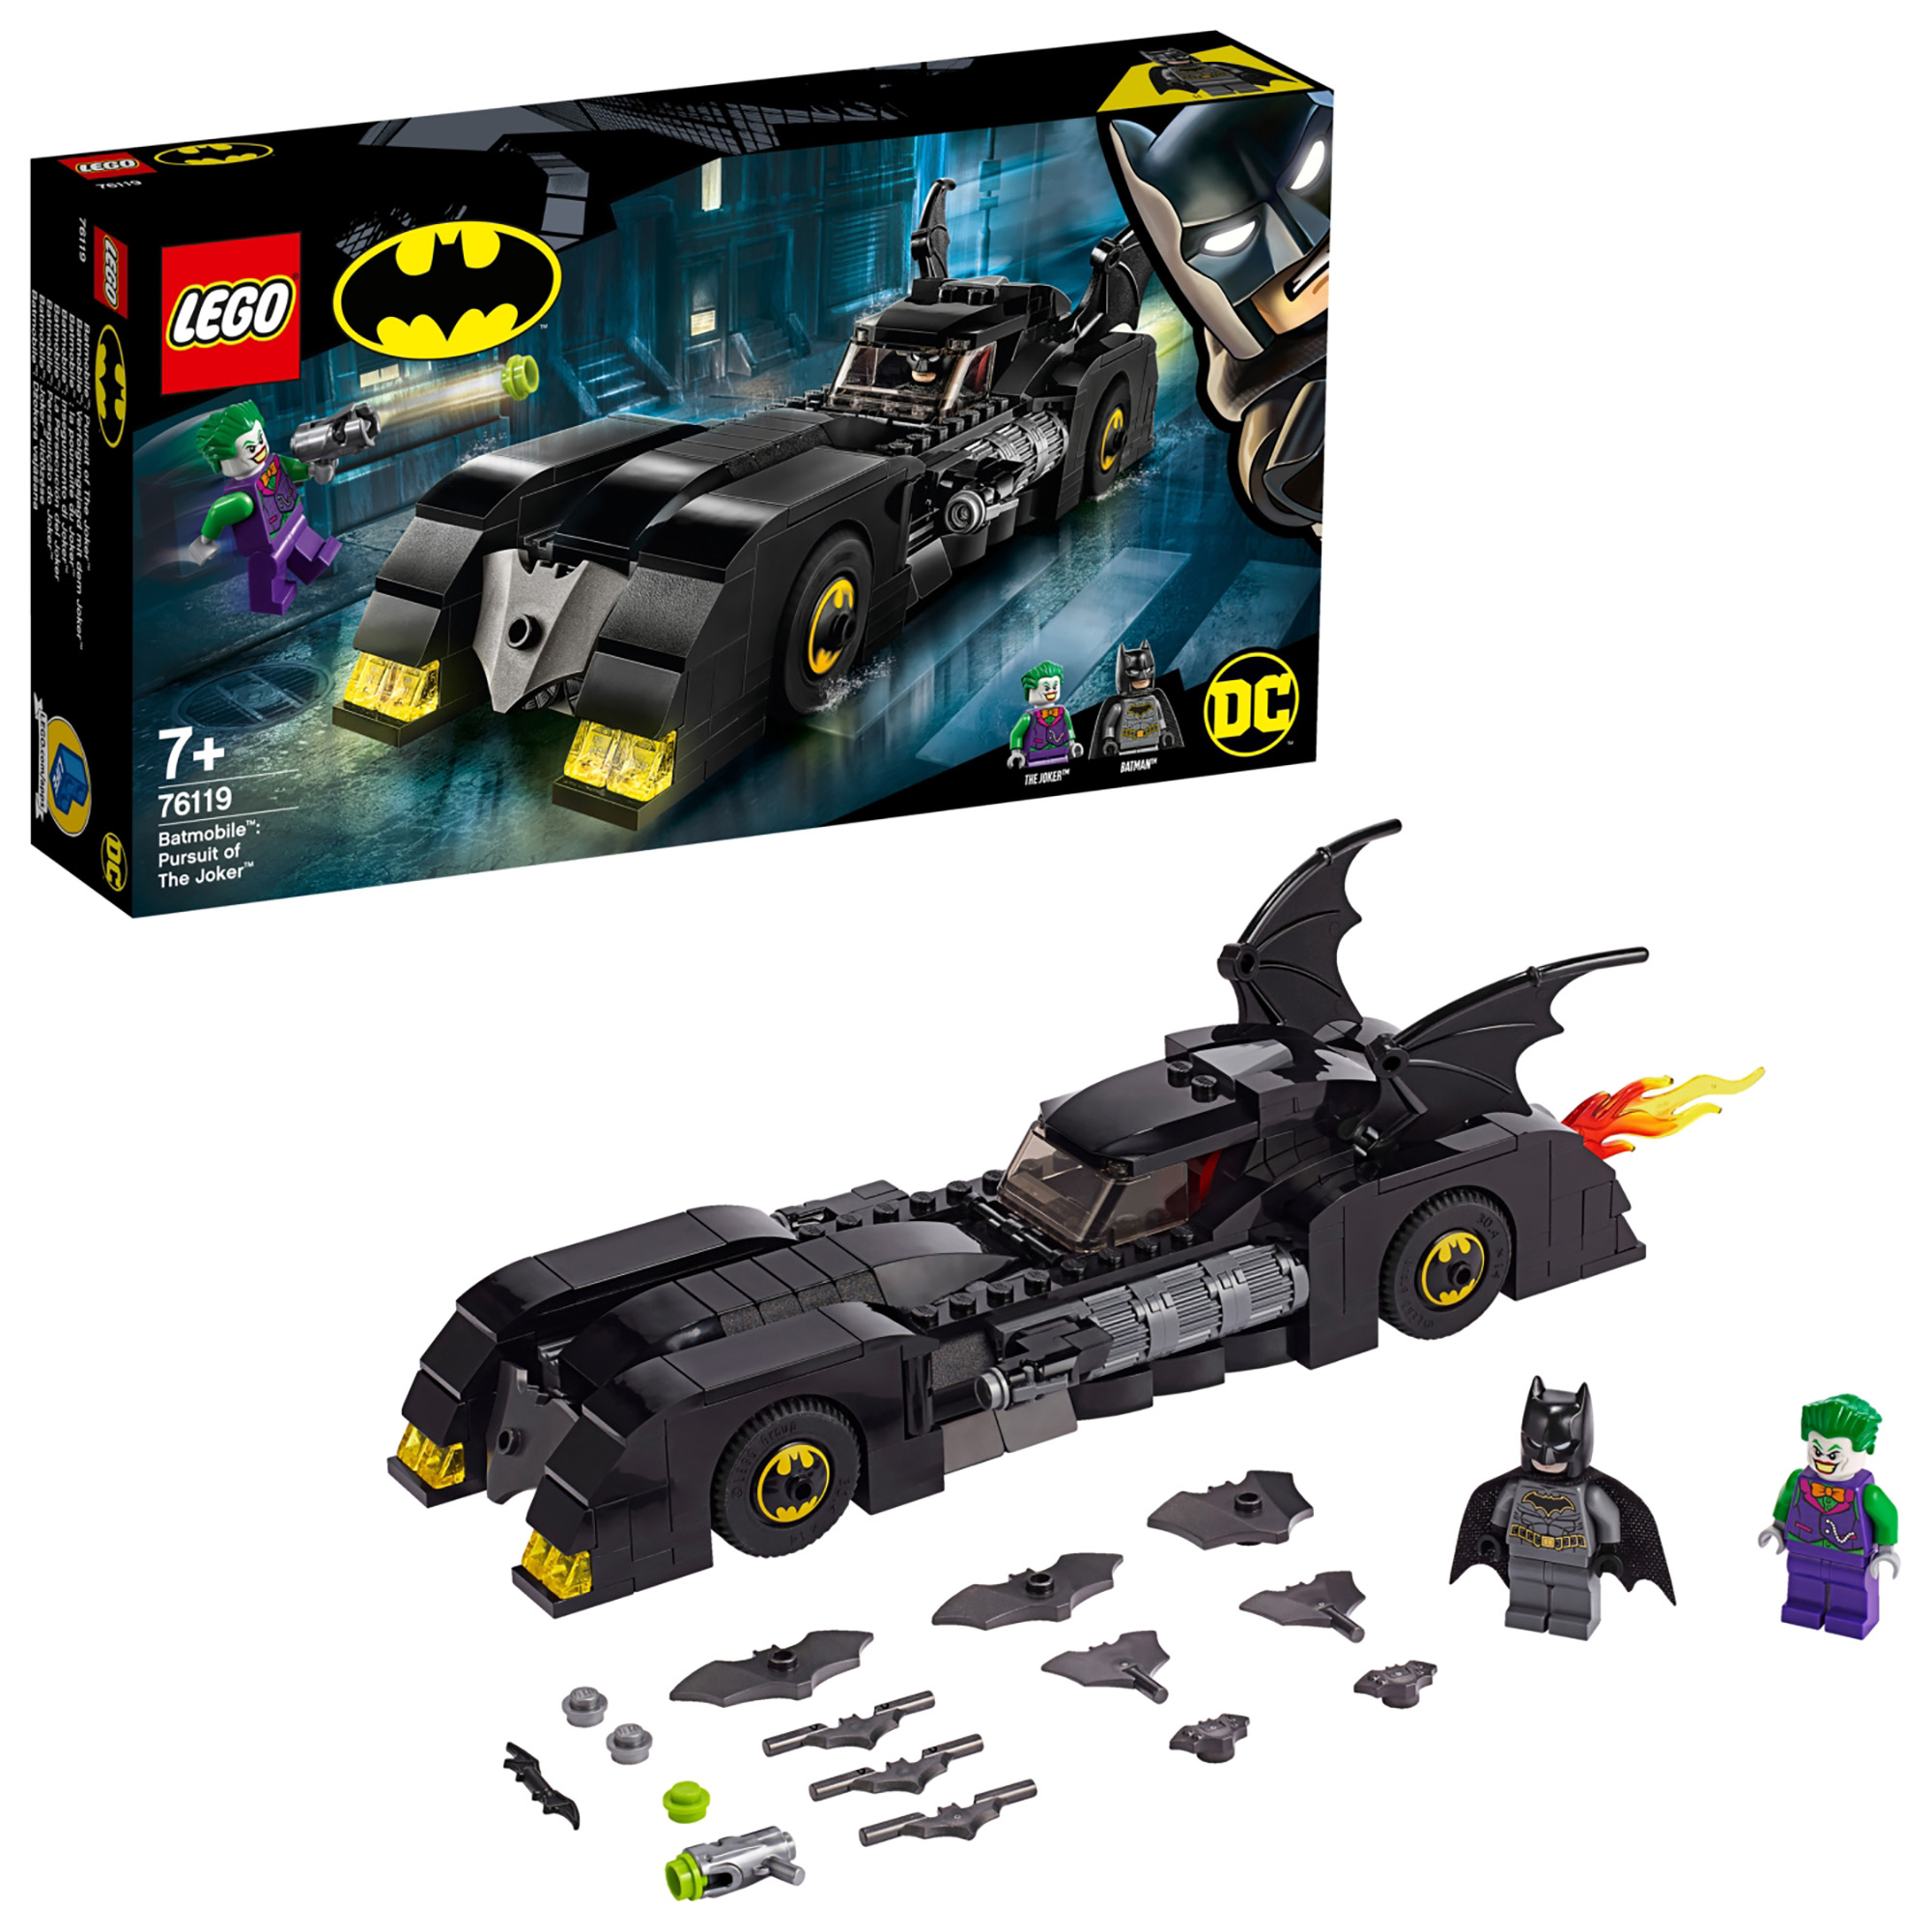 LEGO Super Heroes Batmobile : Pursuit of The Joker